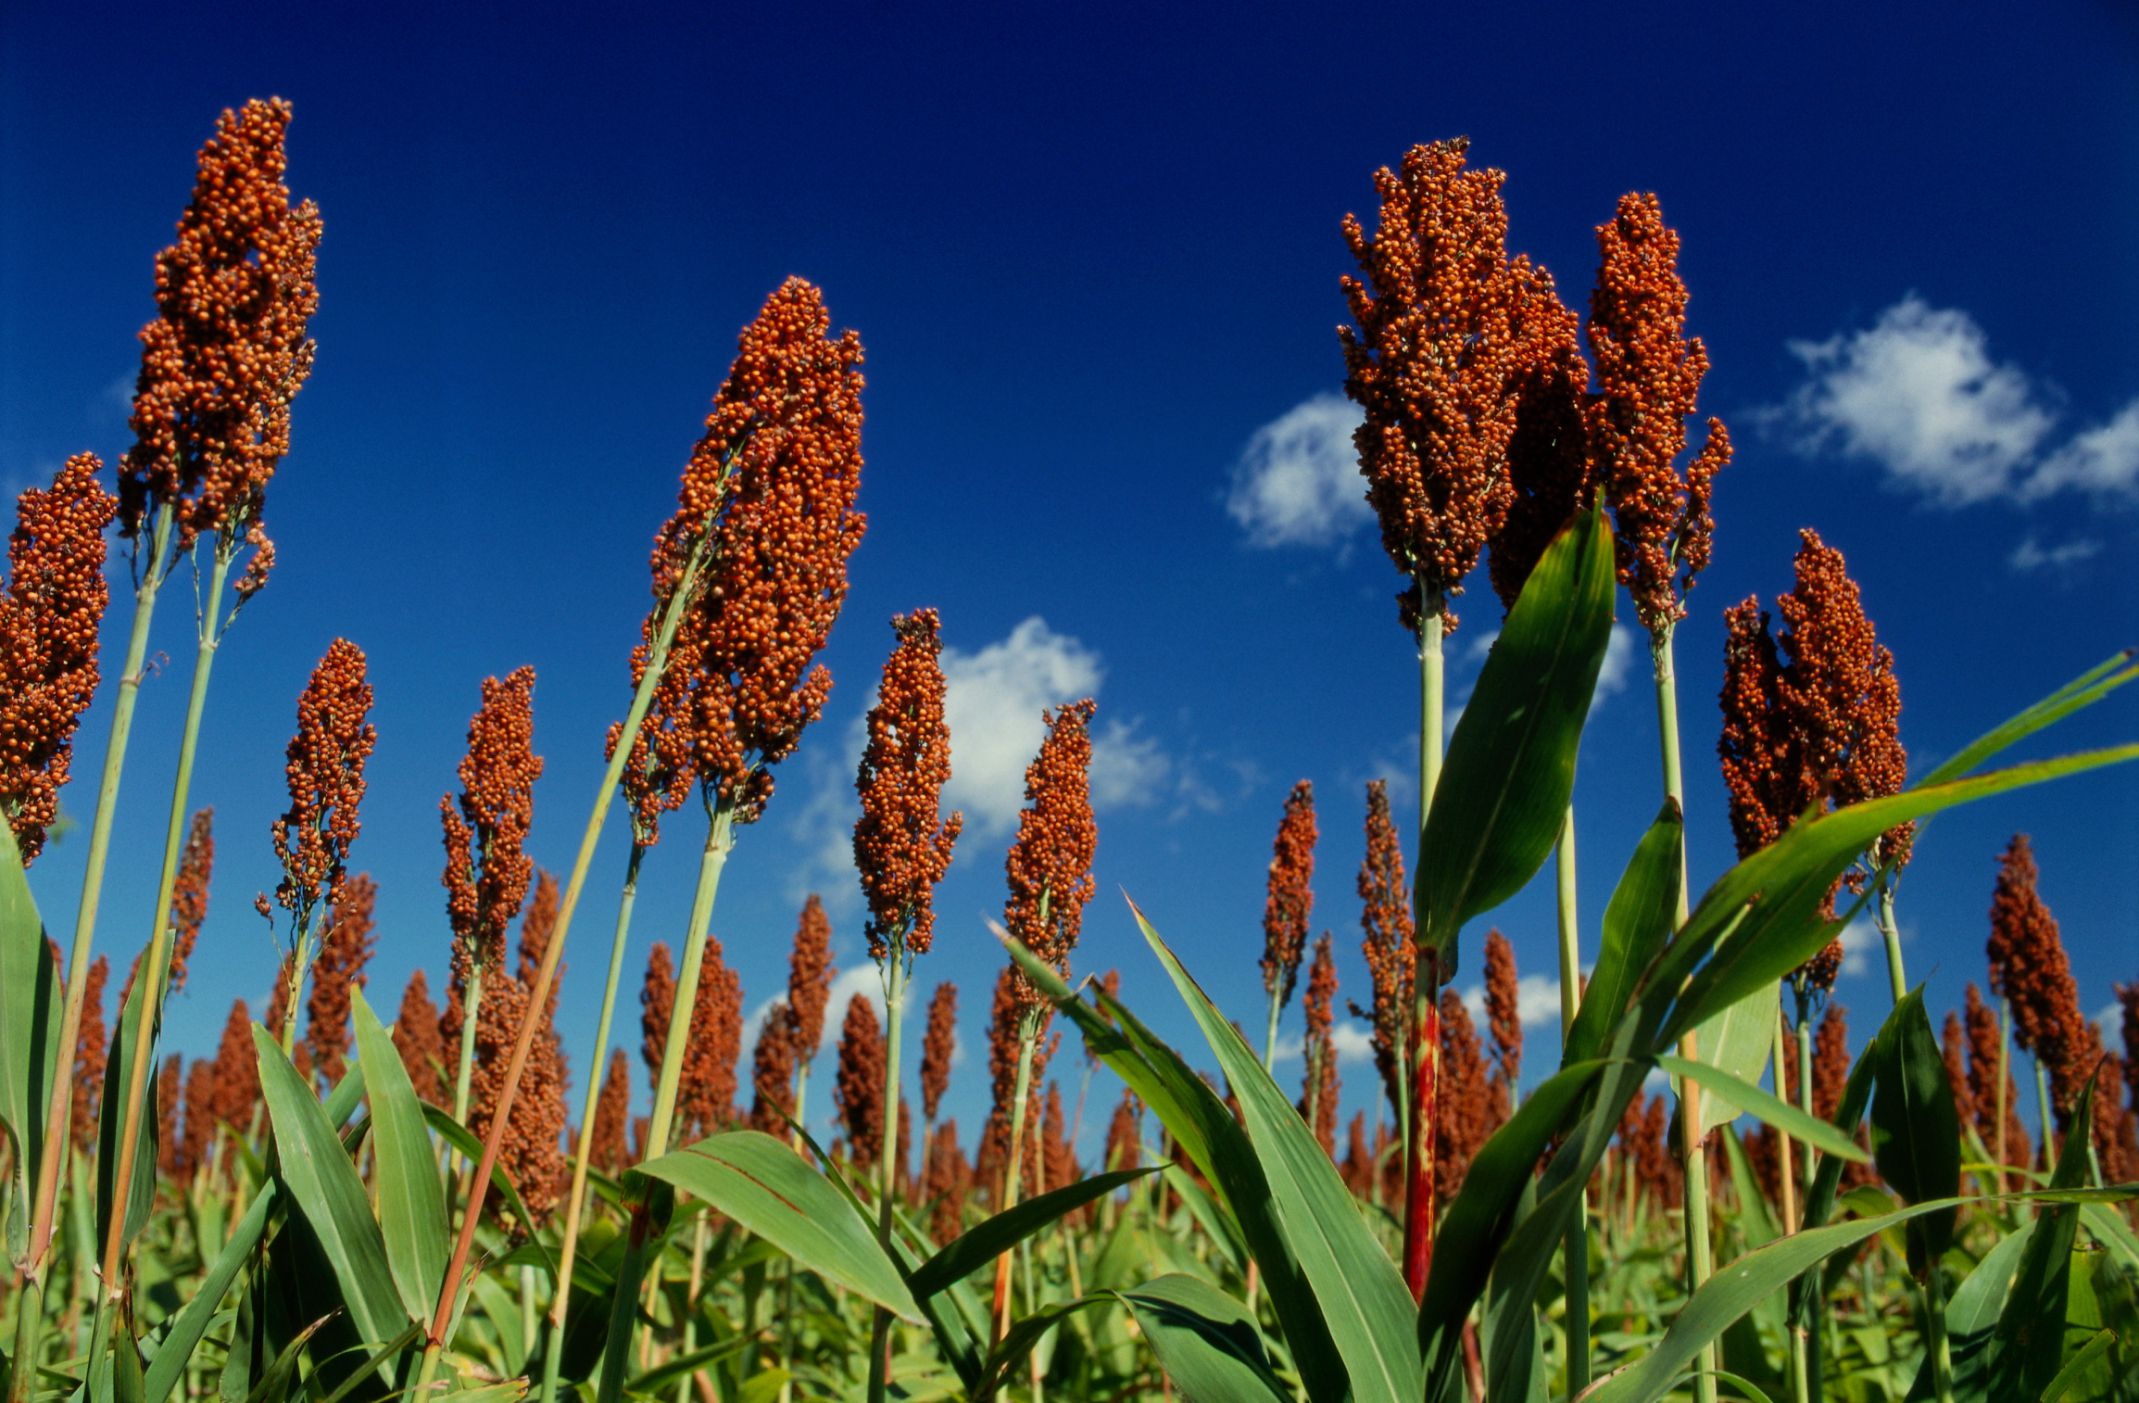 For Gluten-Free Sorghum, Stick With These Three Brands